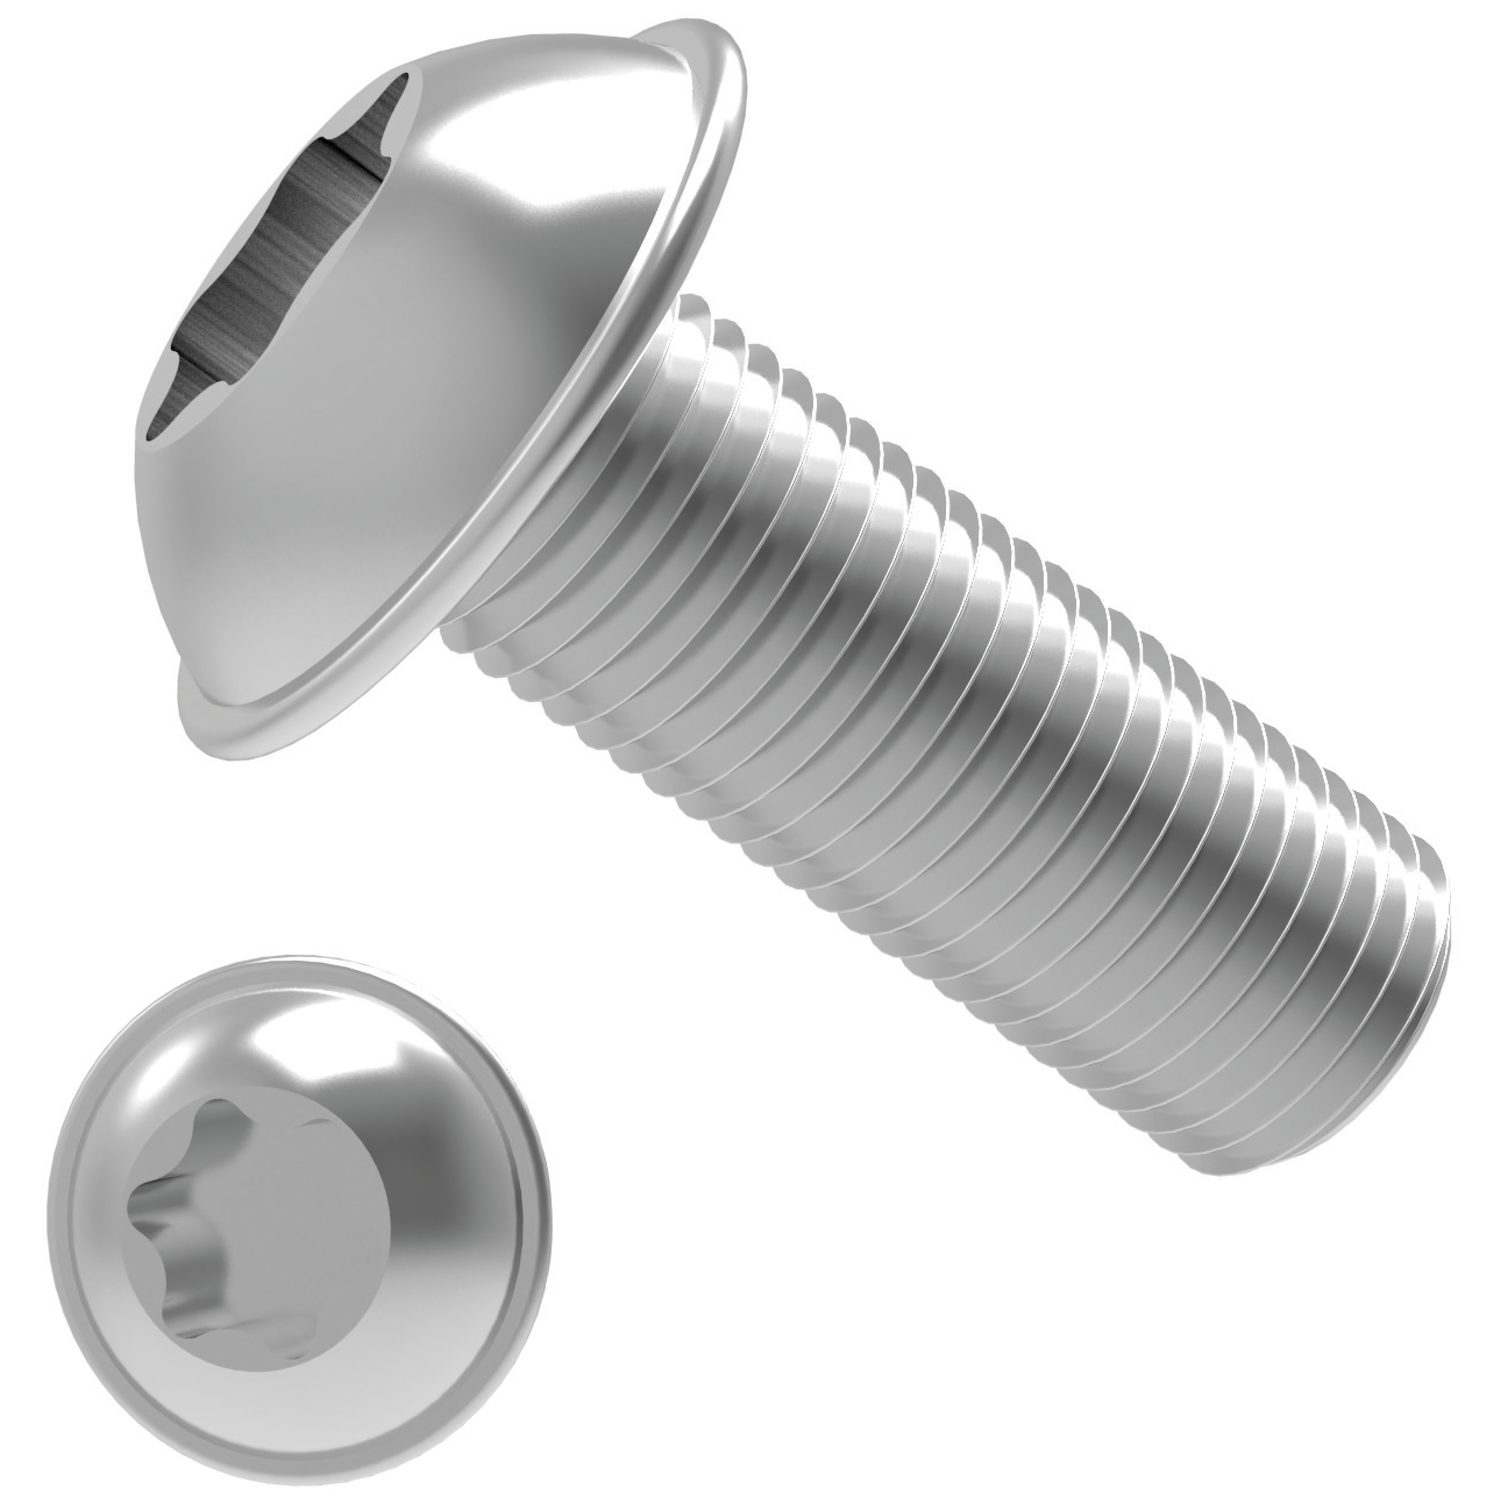 Flanged TX Button Screws Threaded within 2,5 x pitch of head.